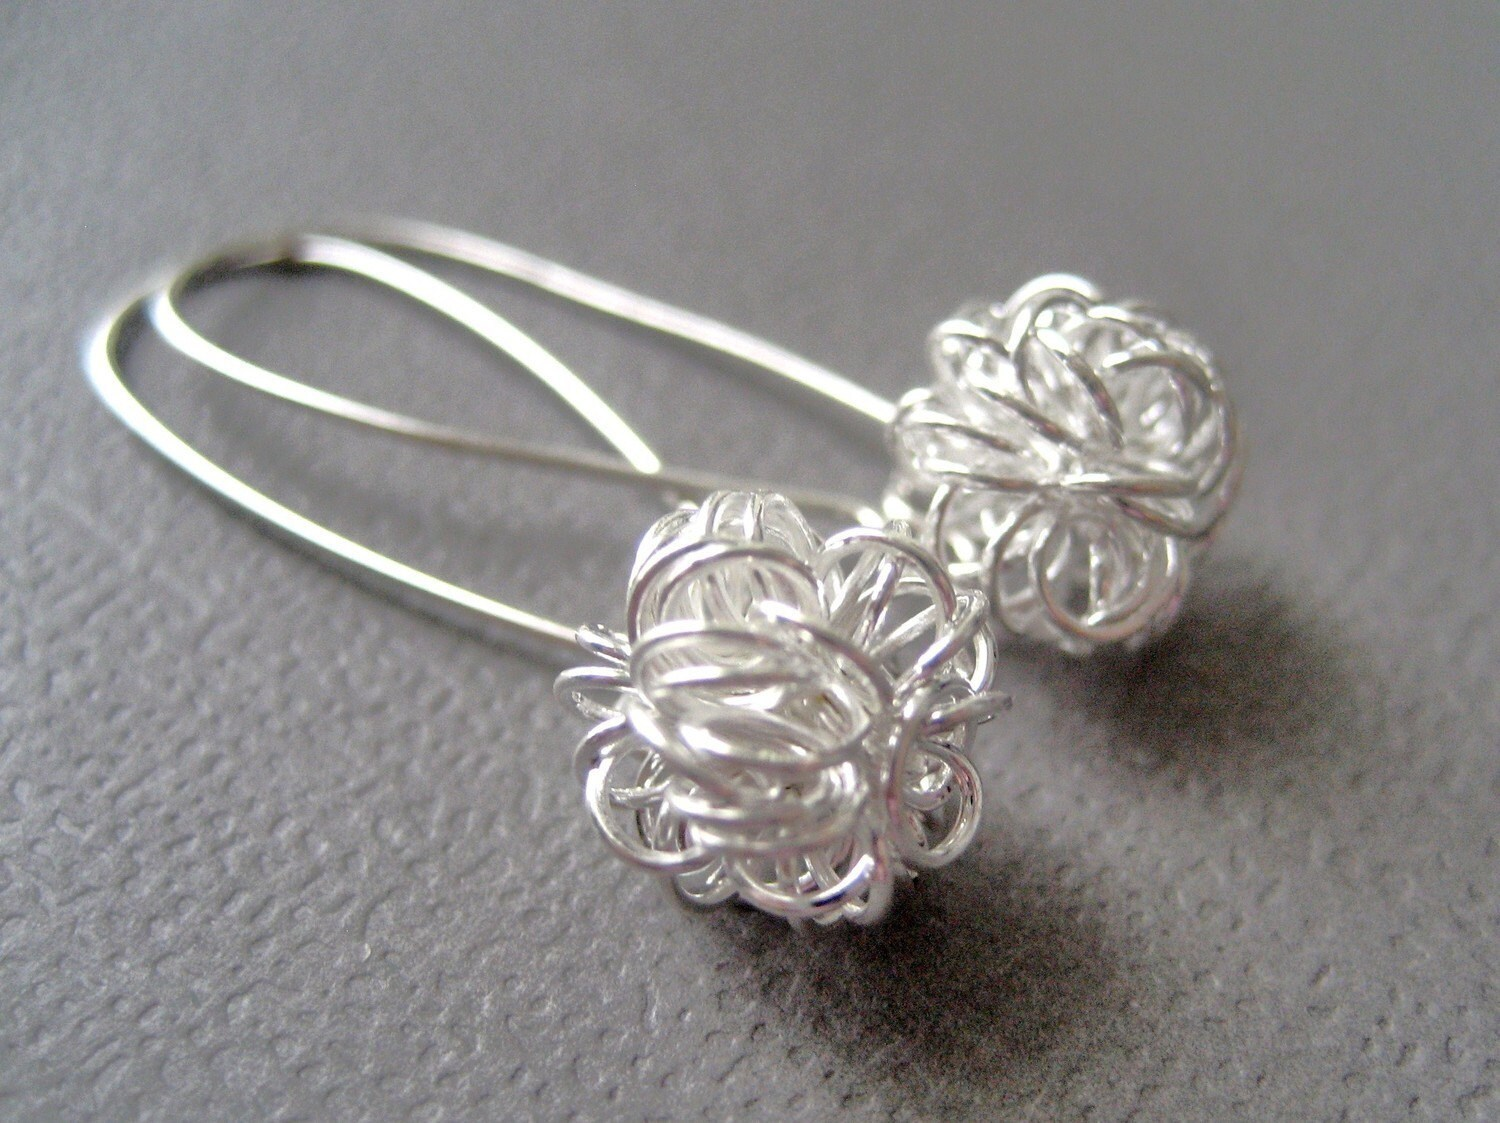 Dandelions Silver Balls European design Silver Earrings